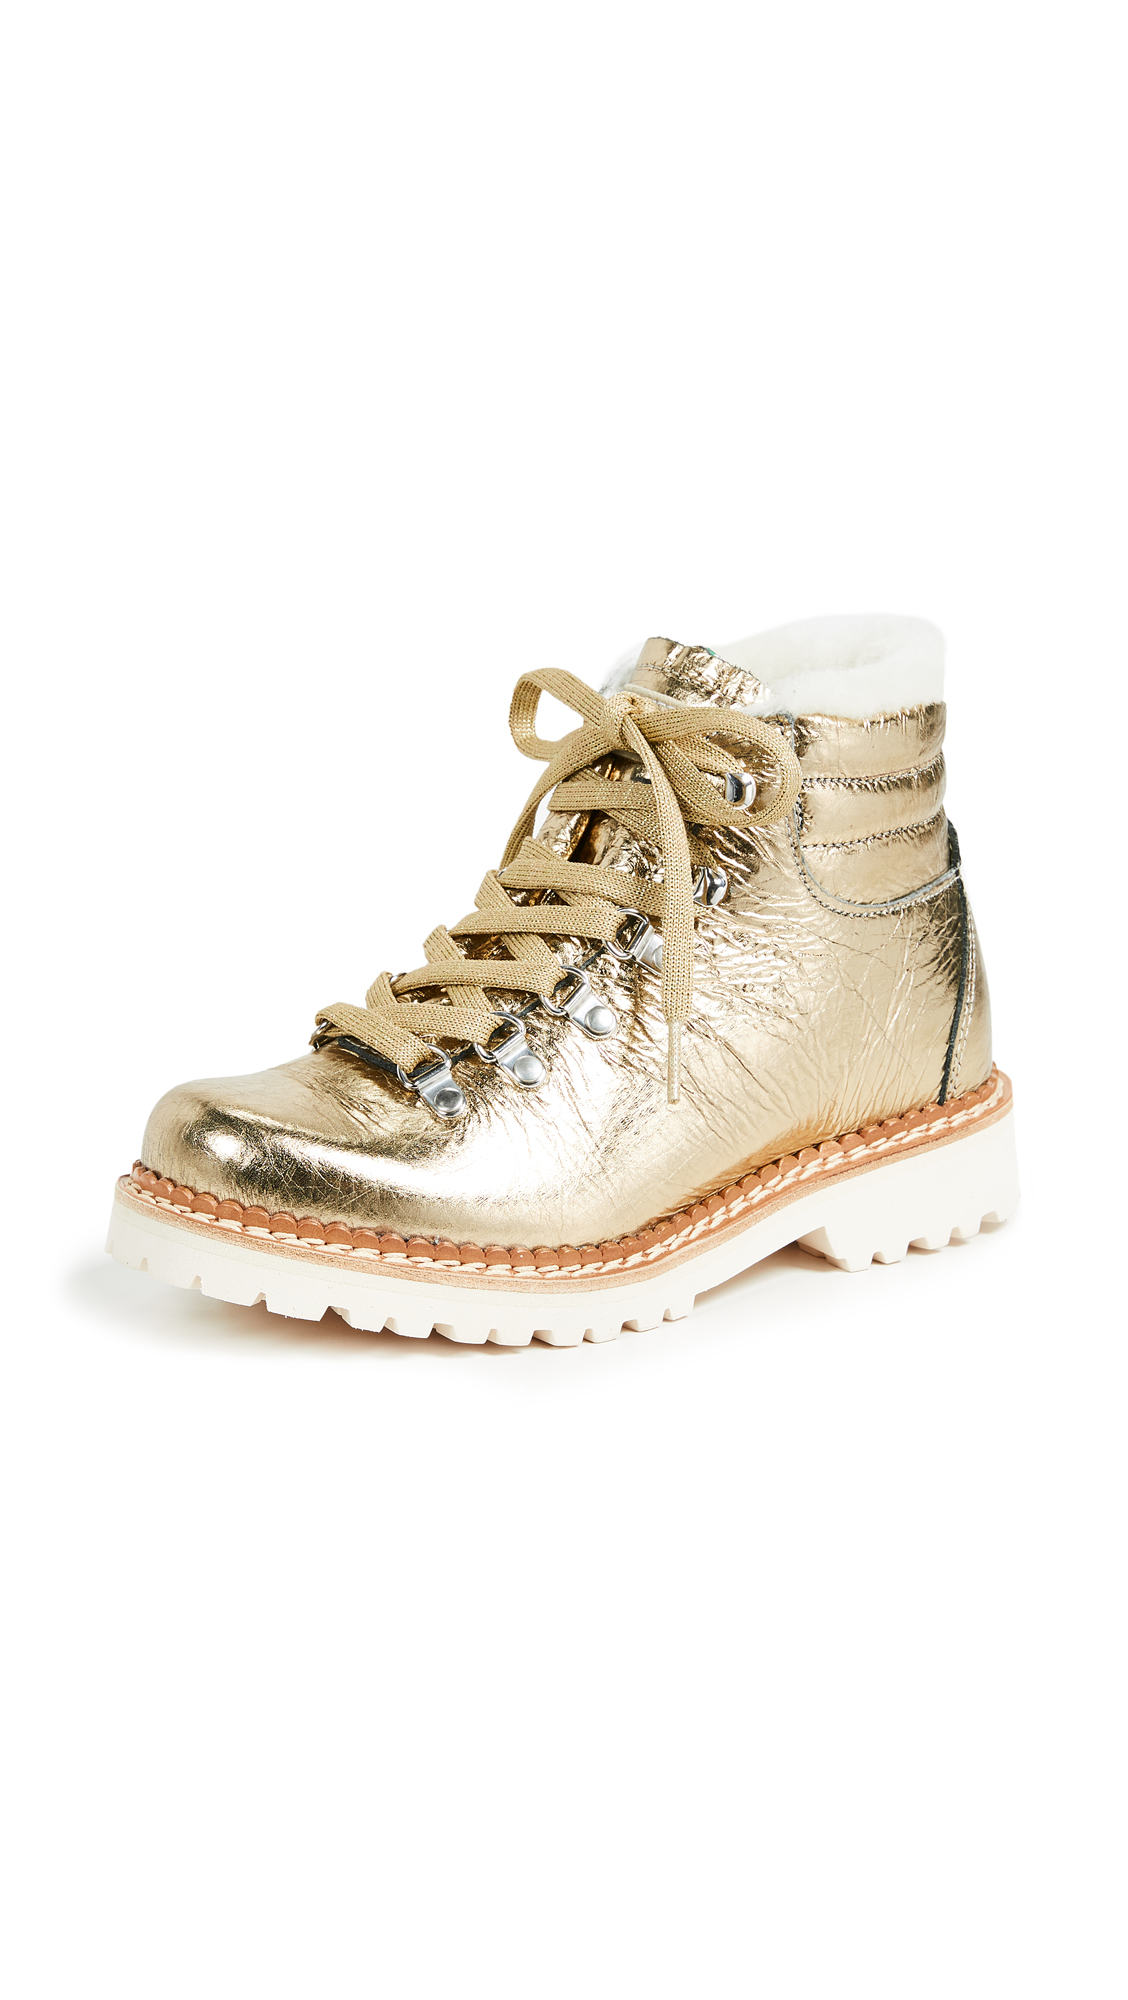 MONTELLIANA Margherita Hiker Boots in Gold